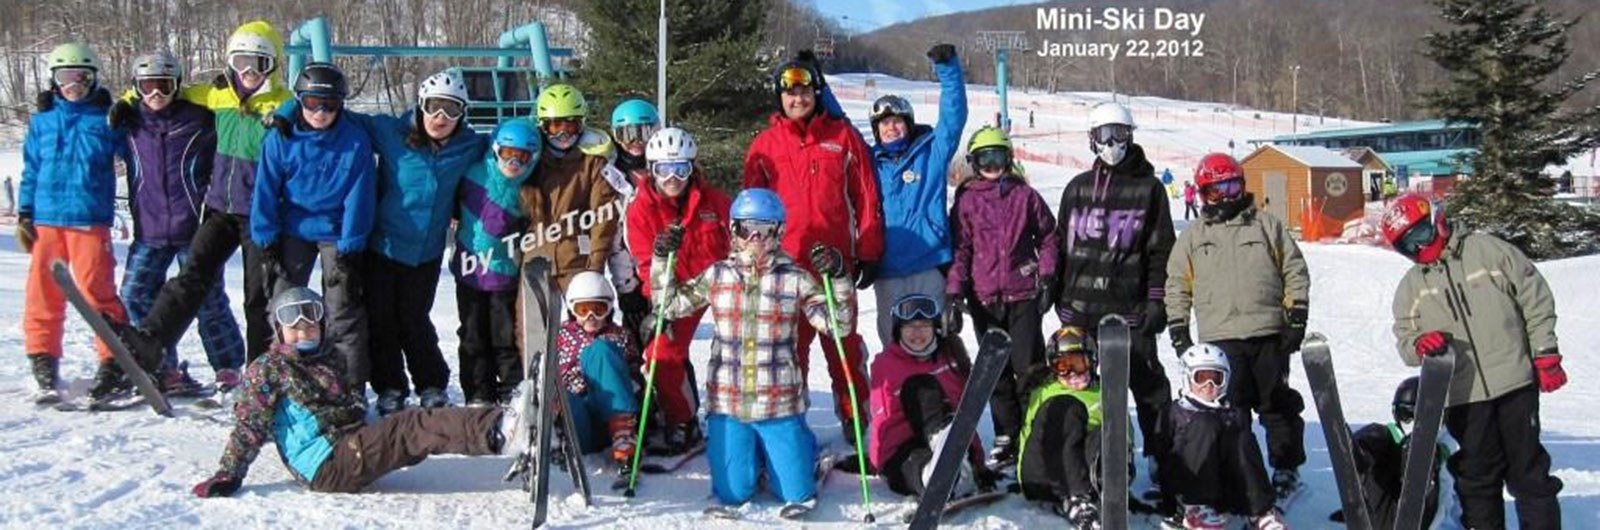 Eagles group of young teen skiers